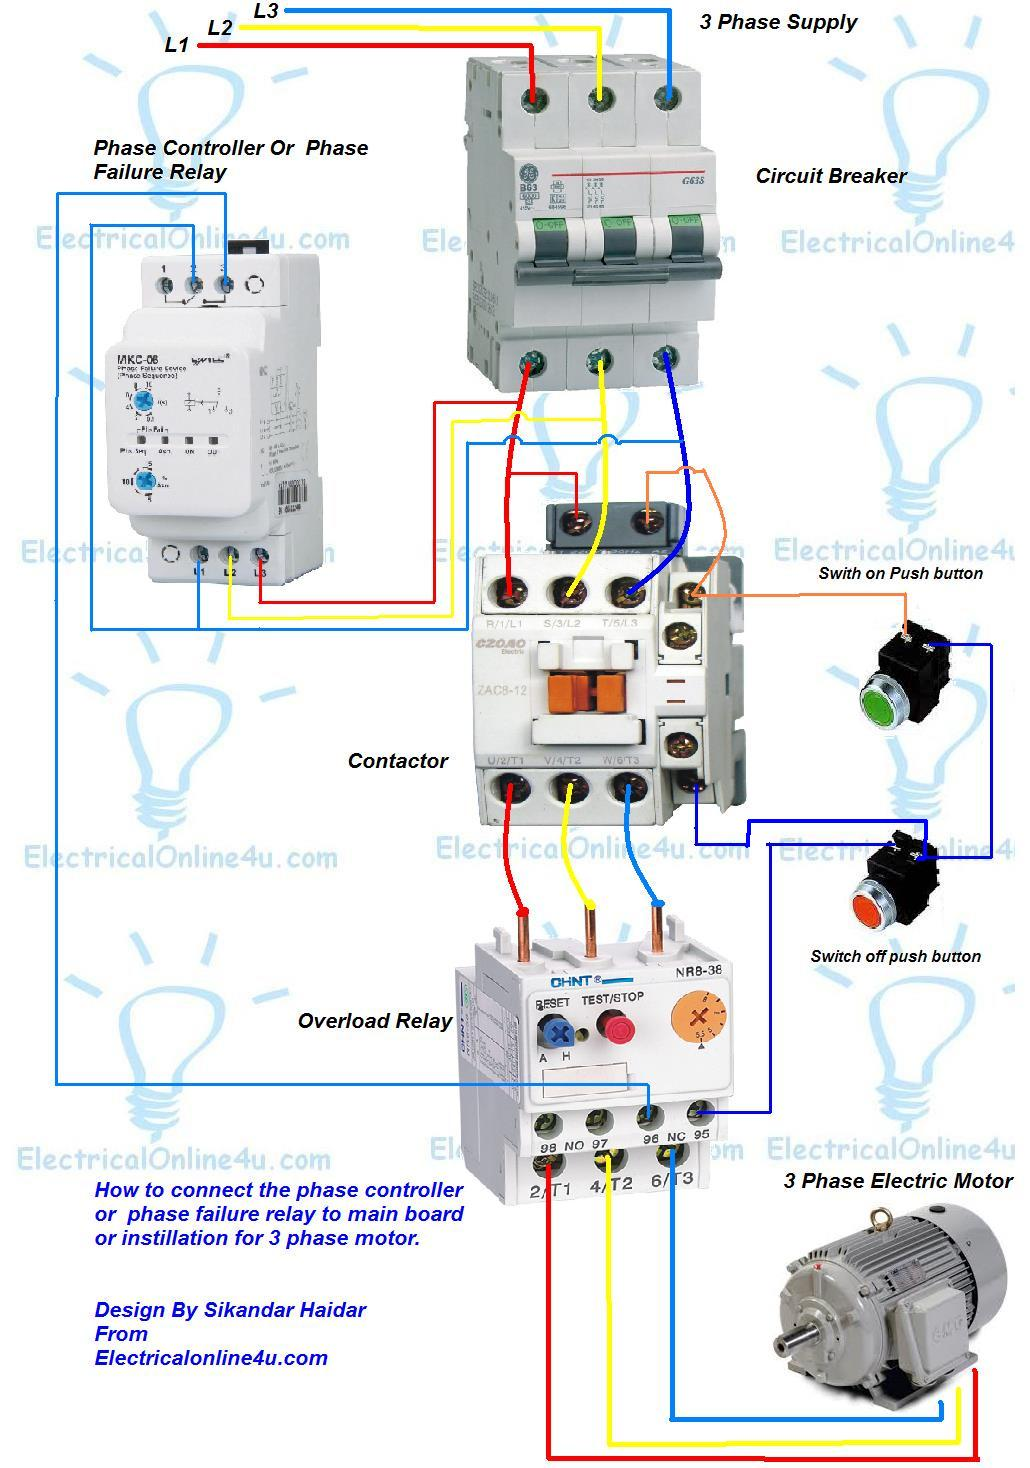 Phase%2Bfailure%2Brelay%2B %2Bphase%2Bcontroller%2Binstilaion%2Bin%2B3%2Bphase%2BMain%2Bboard%2Bor%2Bfor%2B3%2Bphase%2Bmotor phase controller wiring phase failure relay diagram electrical 3 phase wiring diagram for house at soozxer.org